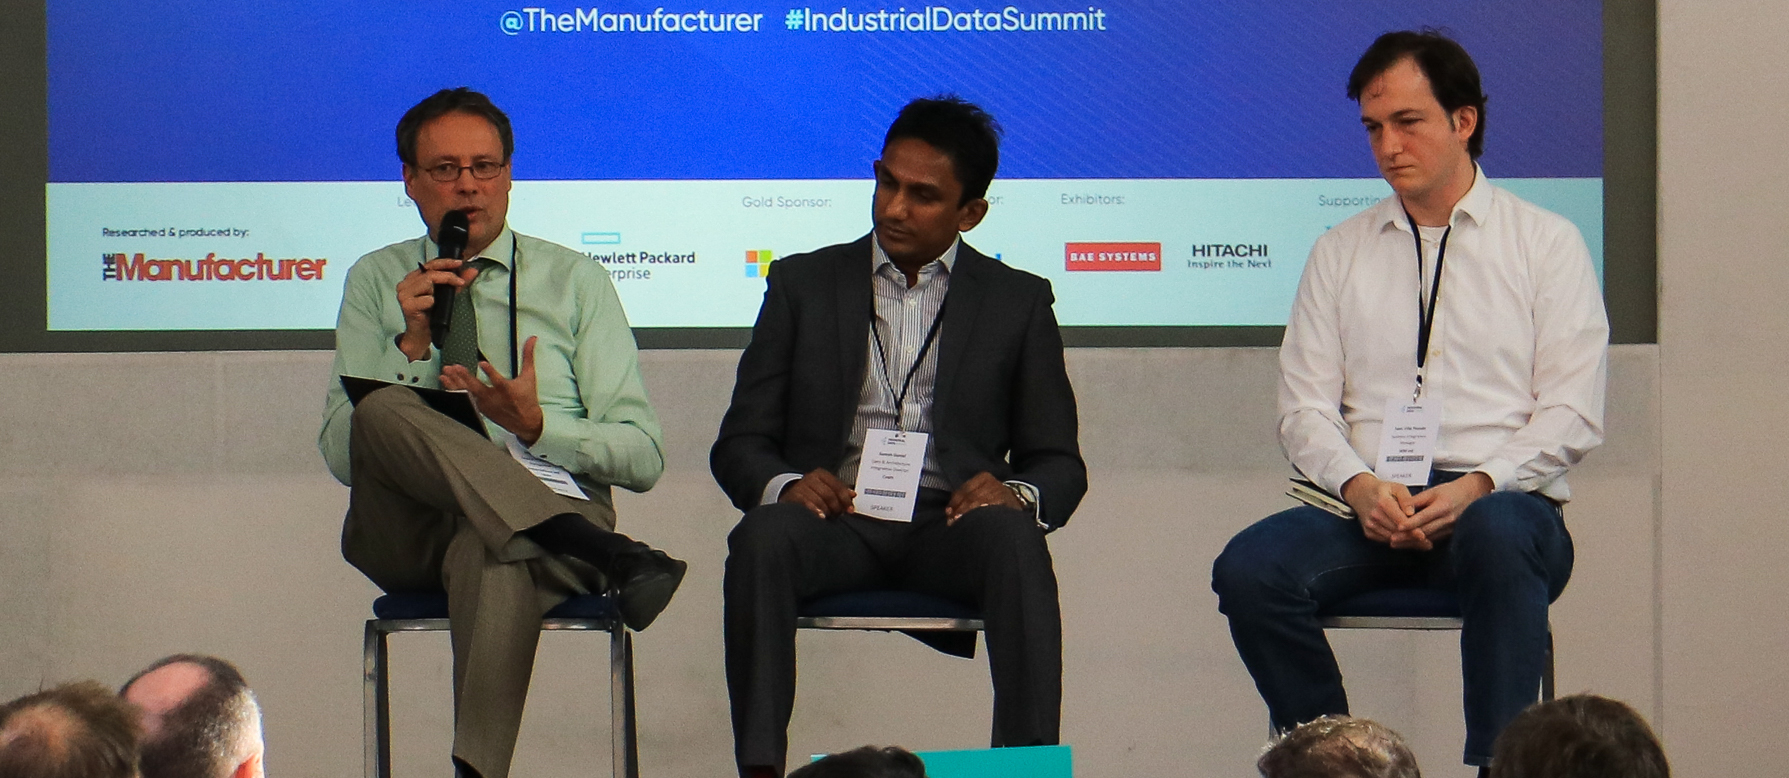 Panel Discussion Change Management - Executives gathered to discuss how best to take advantage of and leverage the power of digital technology at Industrial Data Summit 2019.